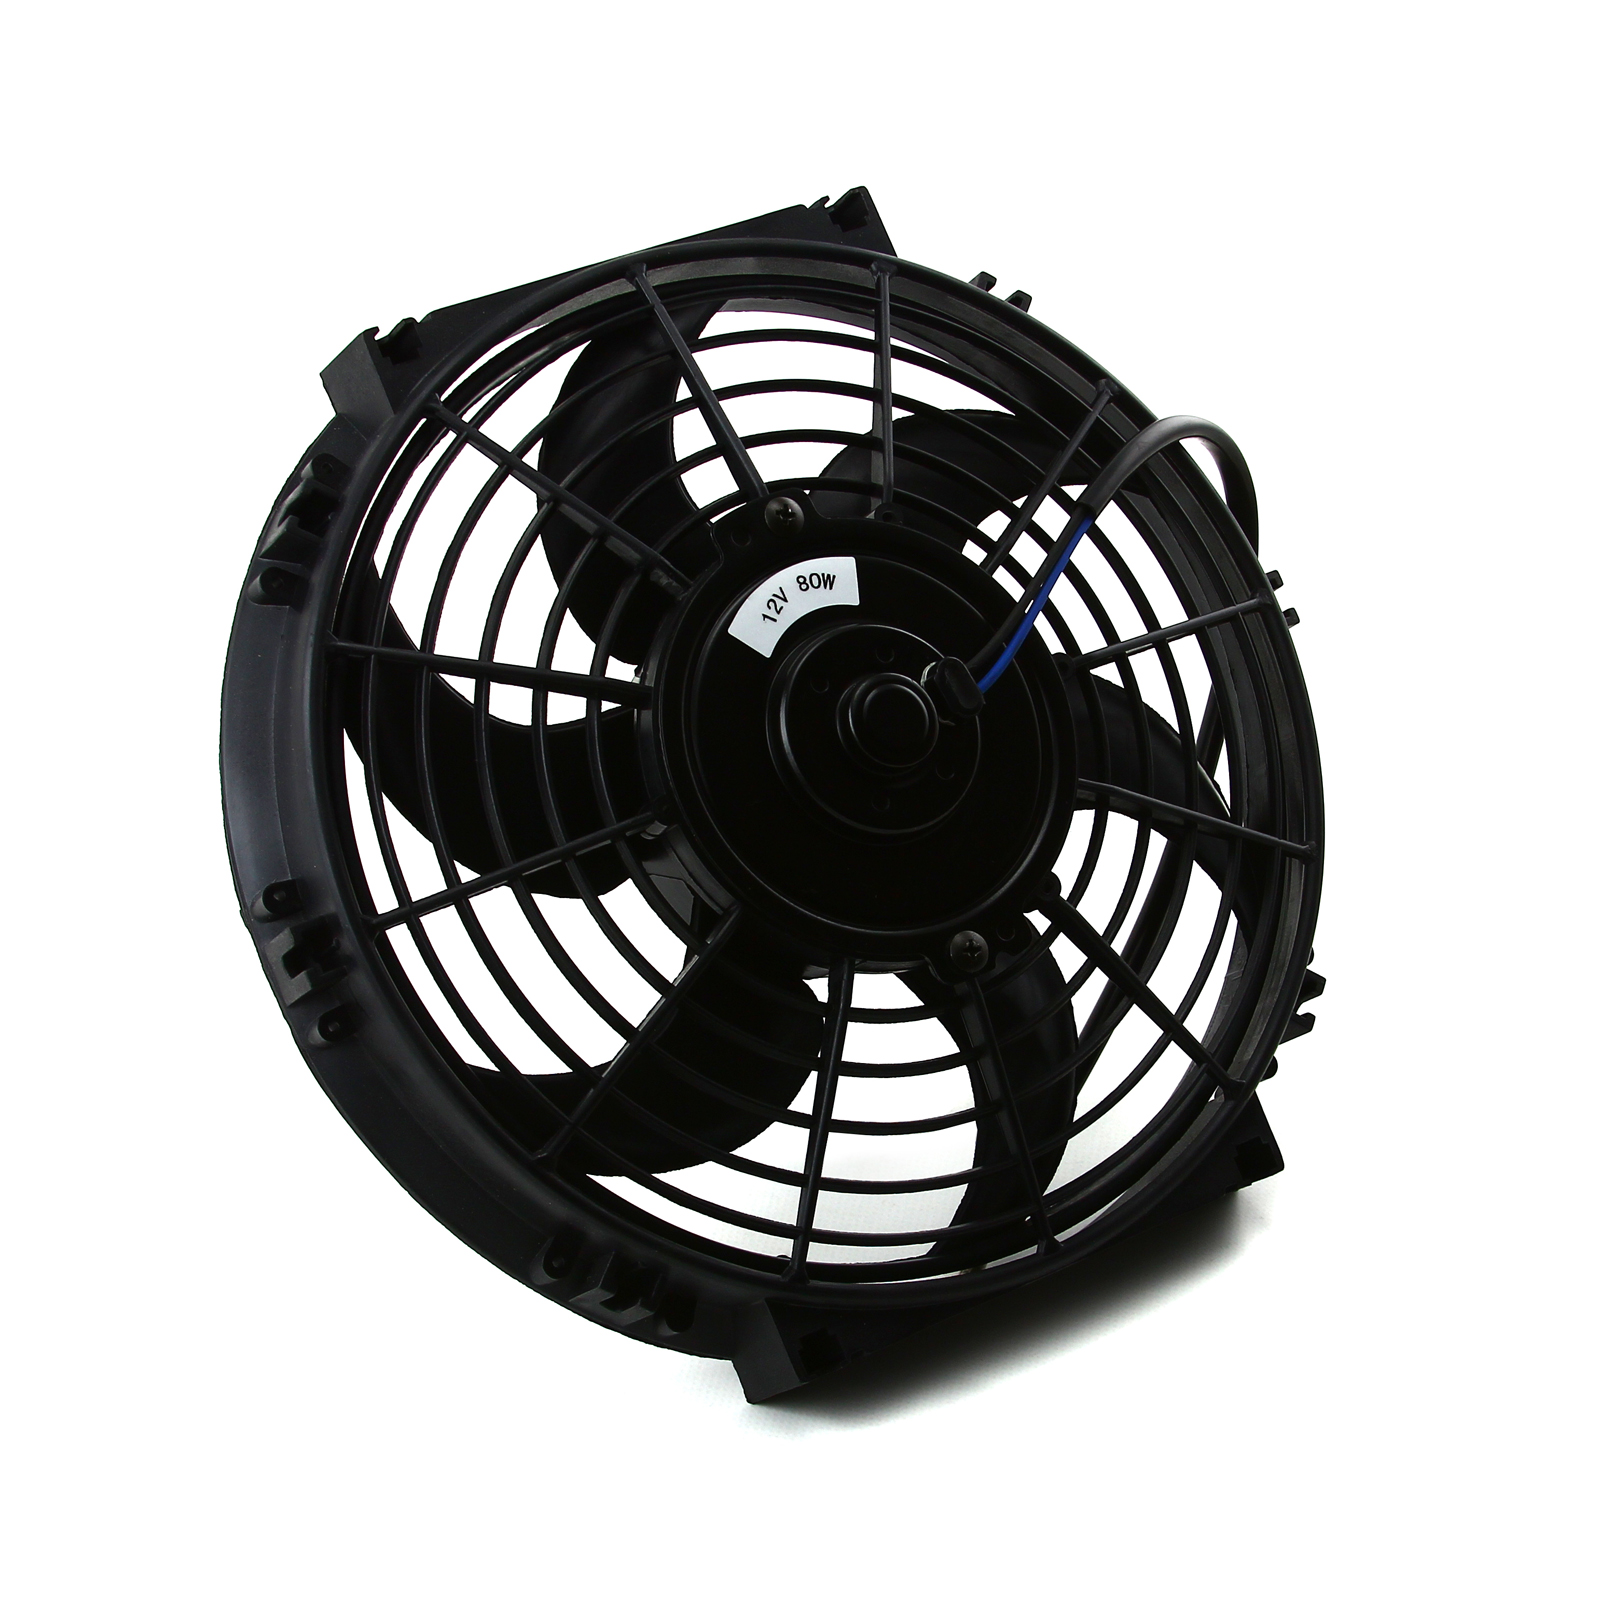 "10"" Reversable 12V 'S' Blade Radiator Electric Thermo Fan"